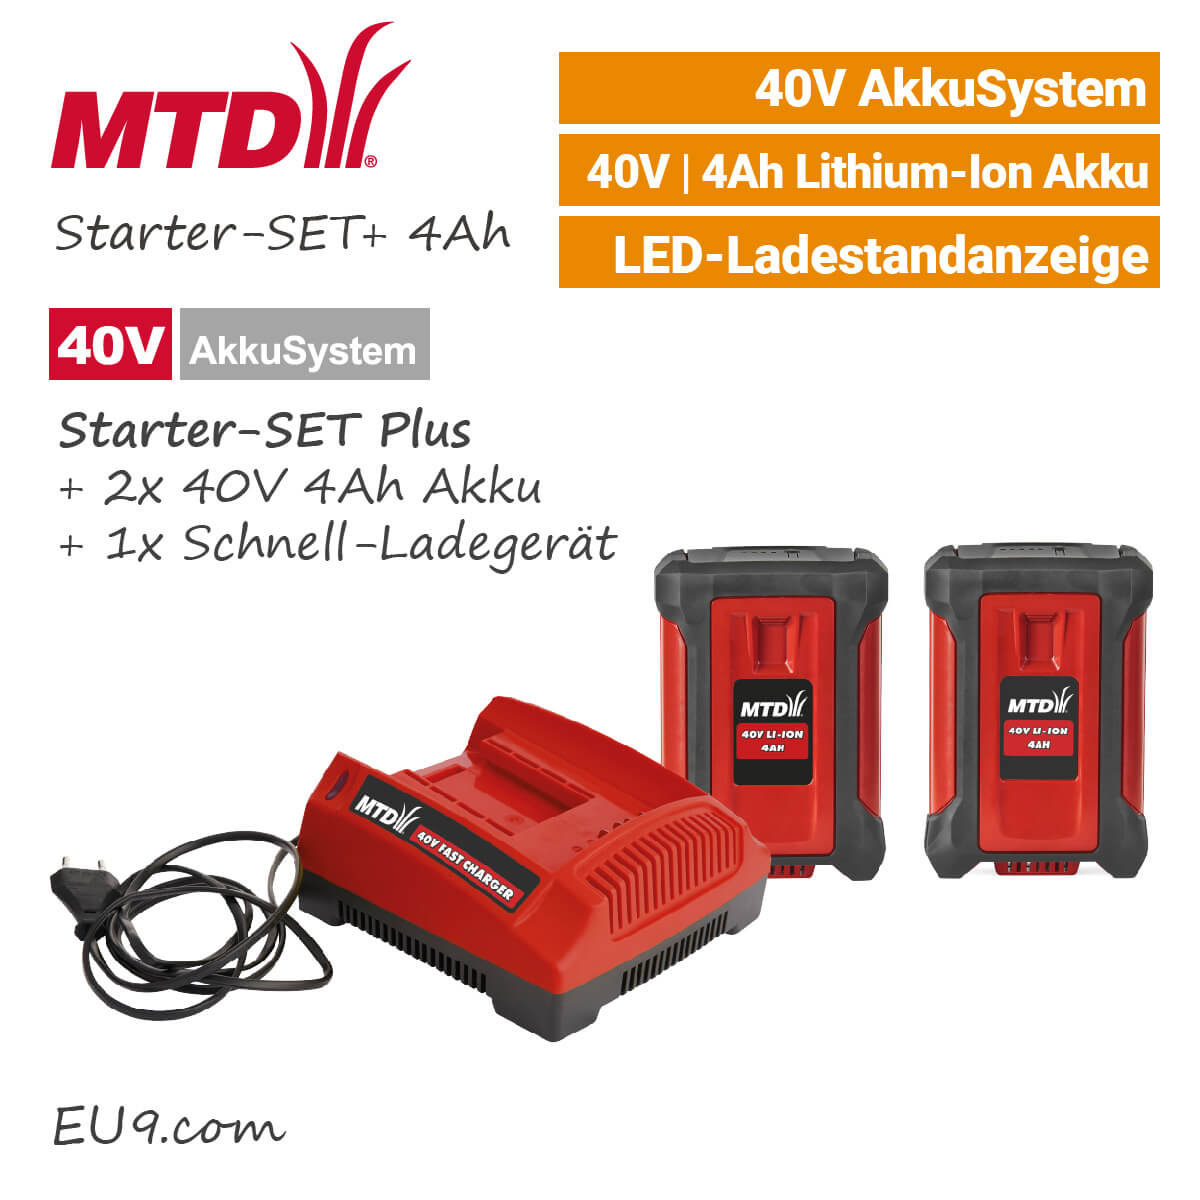 mtd 40v starter set plus 4ah 2x akku ladeger t g nstig kaufen. Black Bedroom Furniture Sets. Home Design Ideas